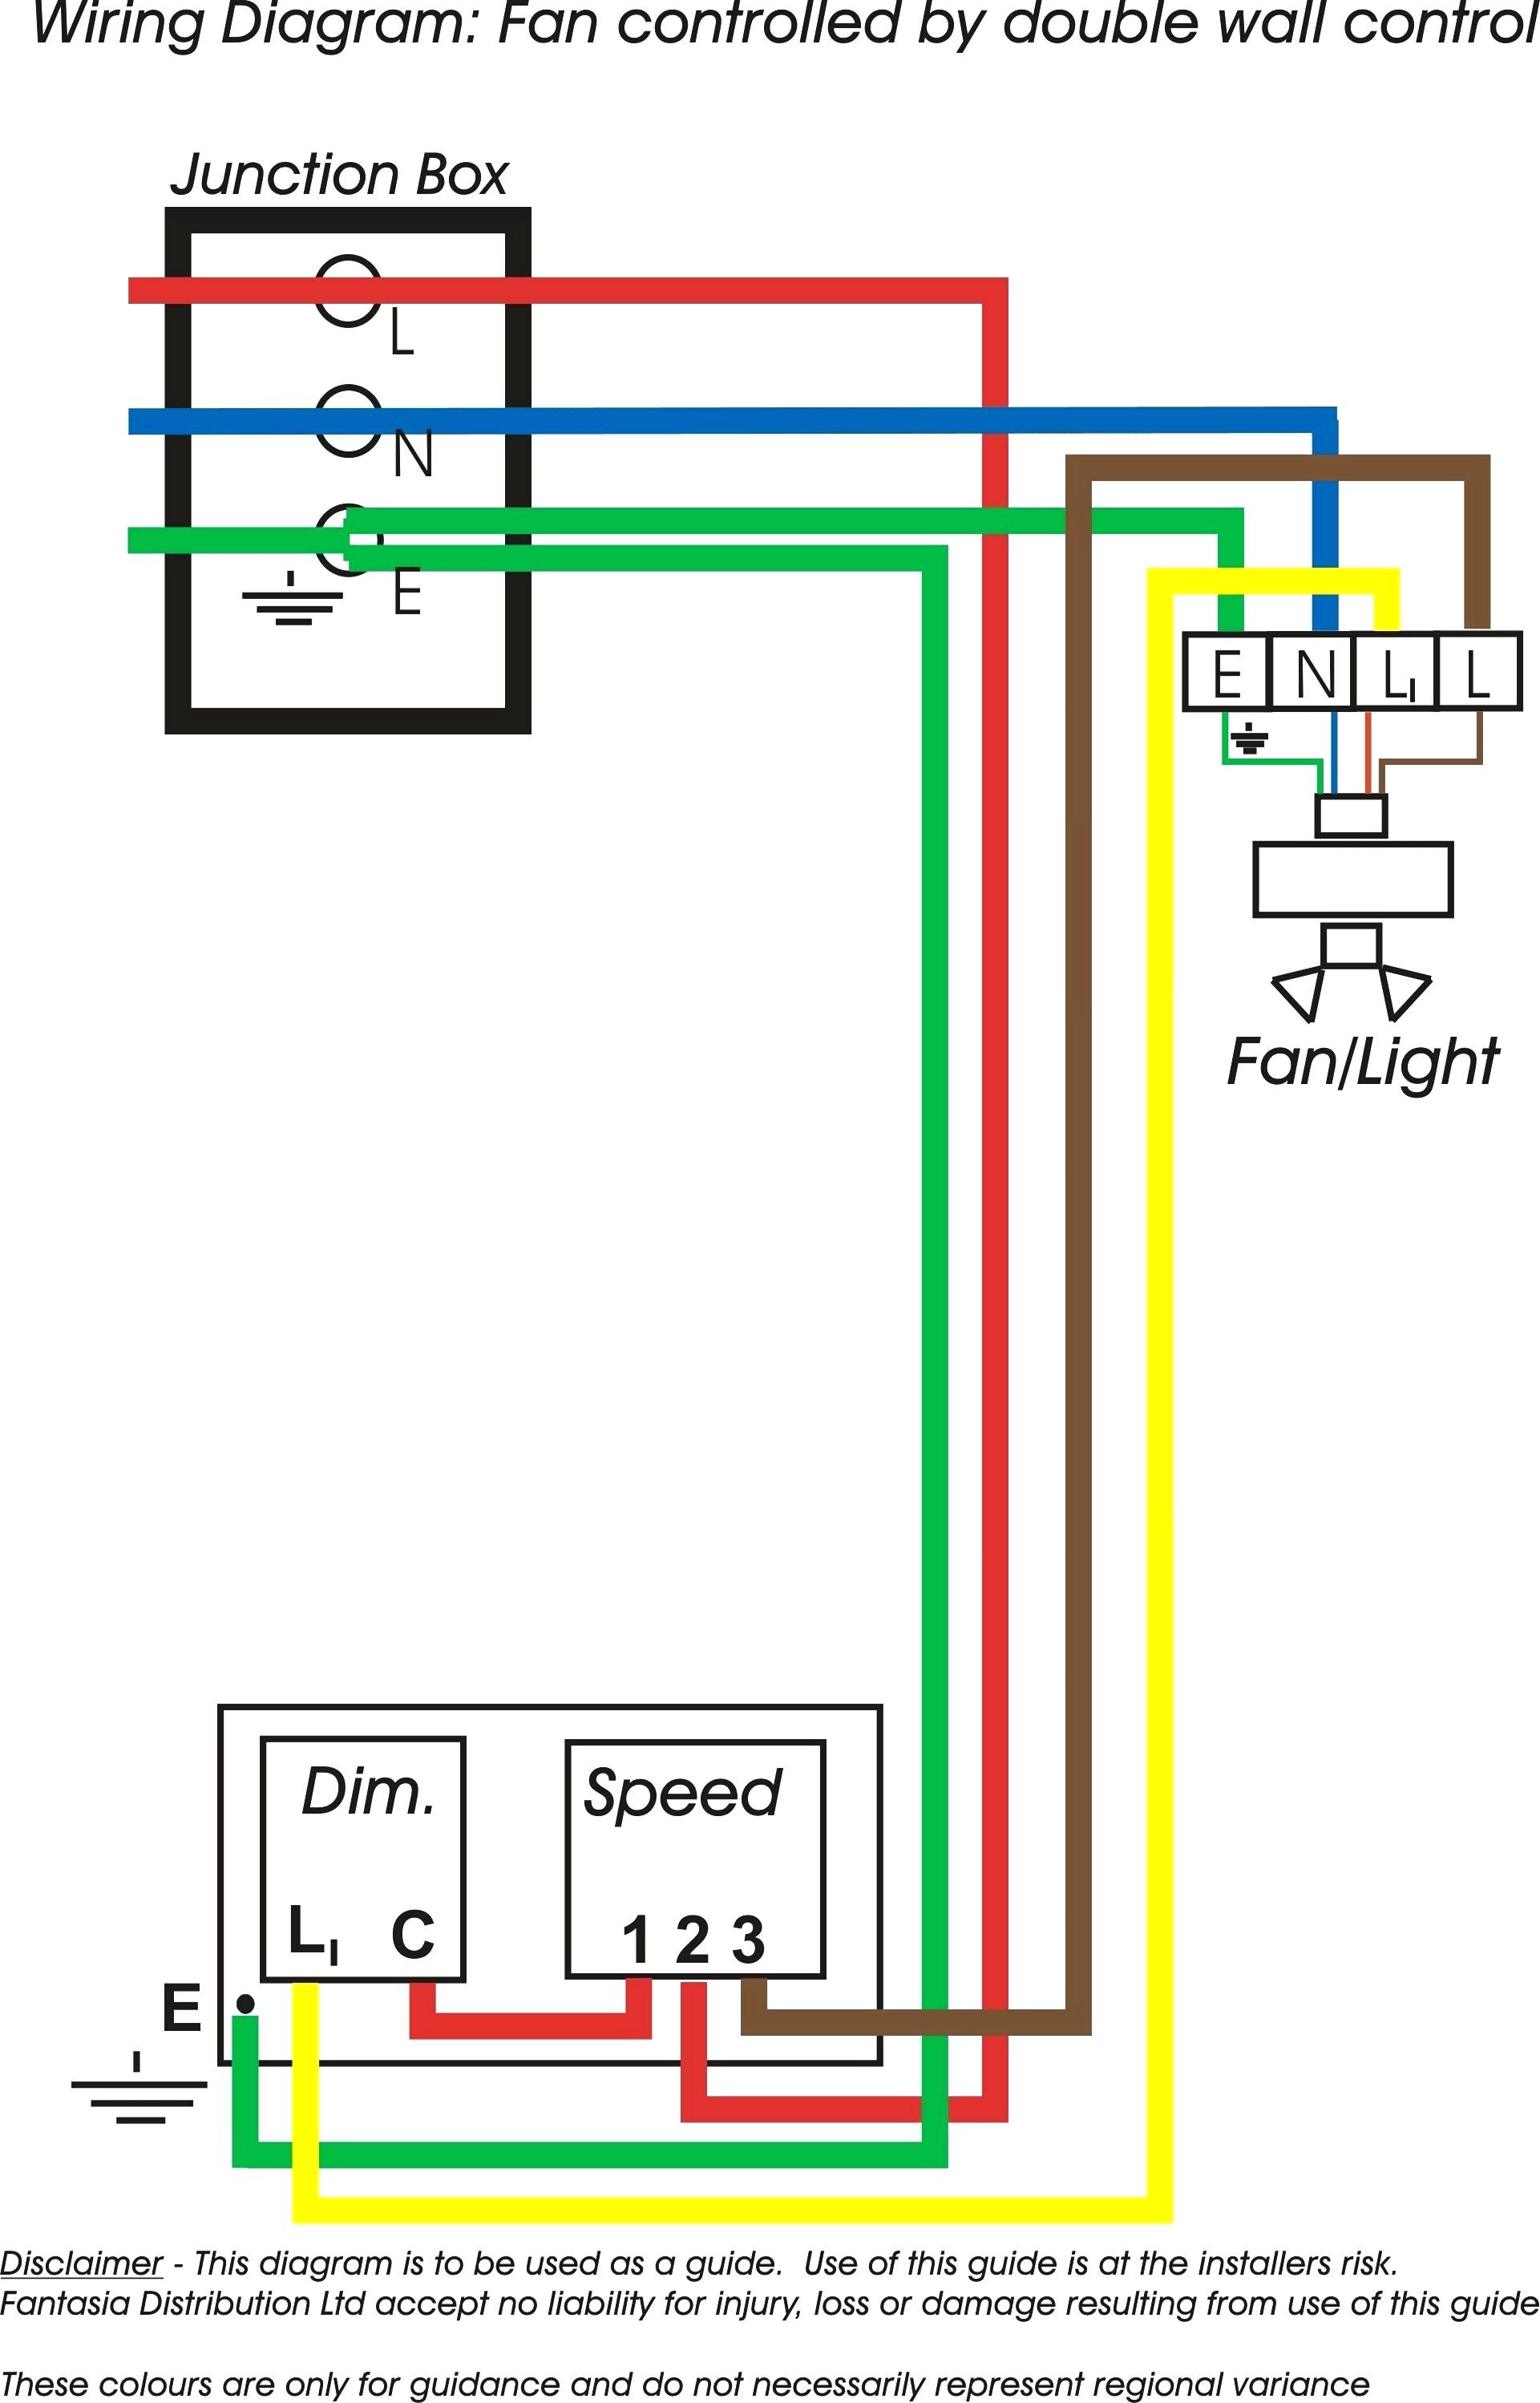 westinghouse 3 speed fan switch wiring diagram Collection-3 Speed Fan Switch Wiring Diagram Harbor Breeze Ceiling Westinghouse 9 18-b